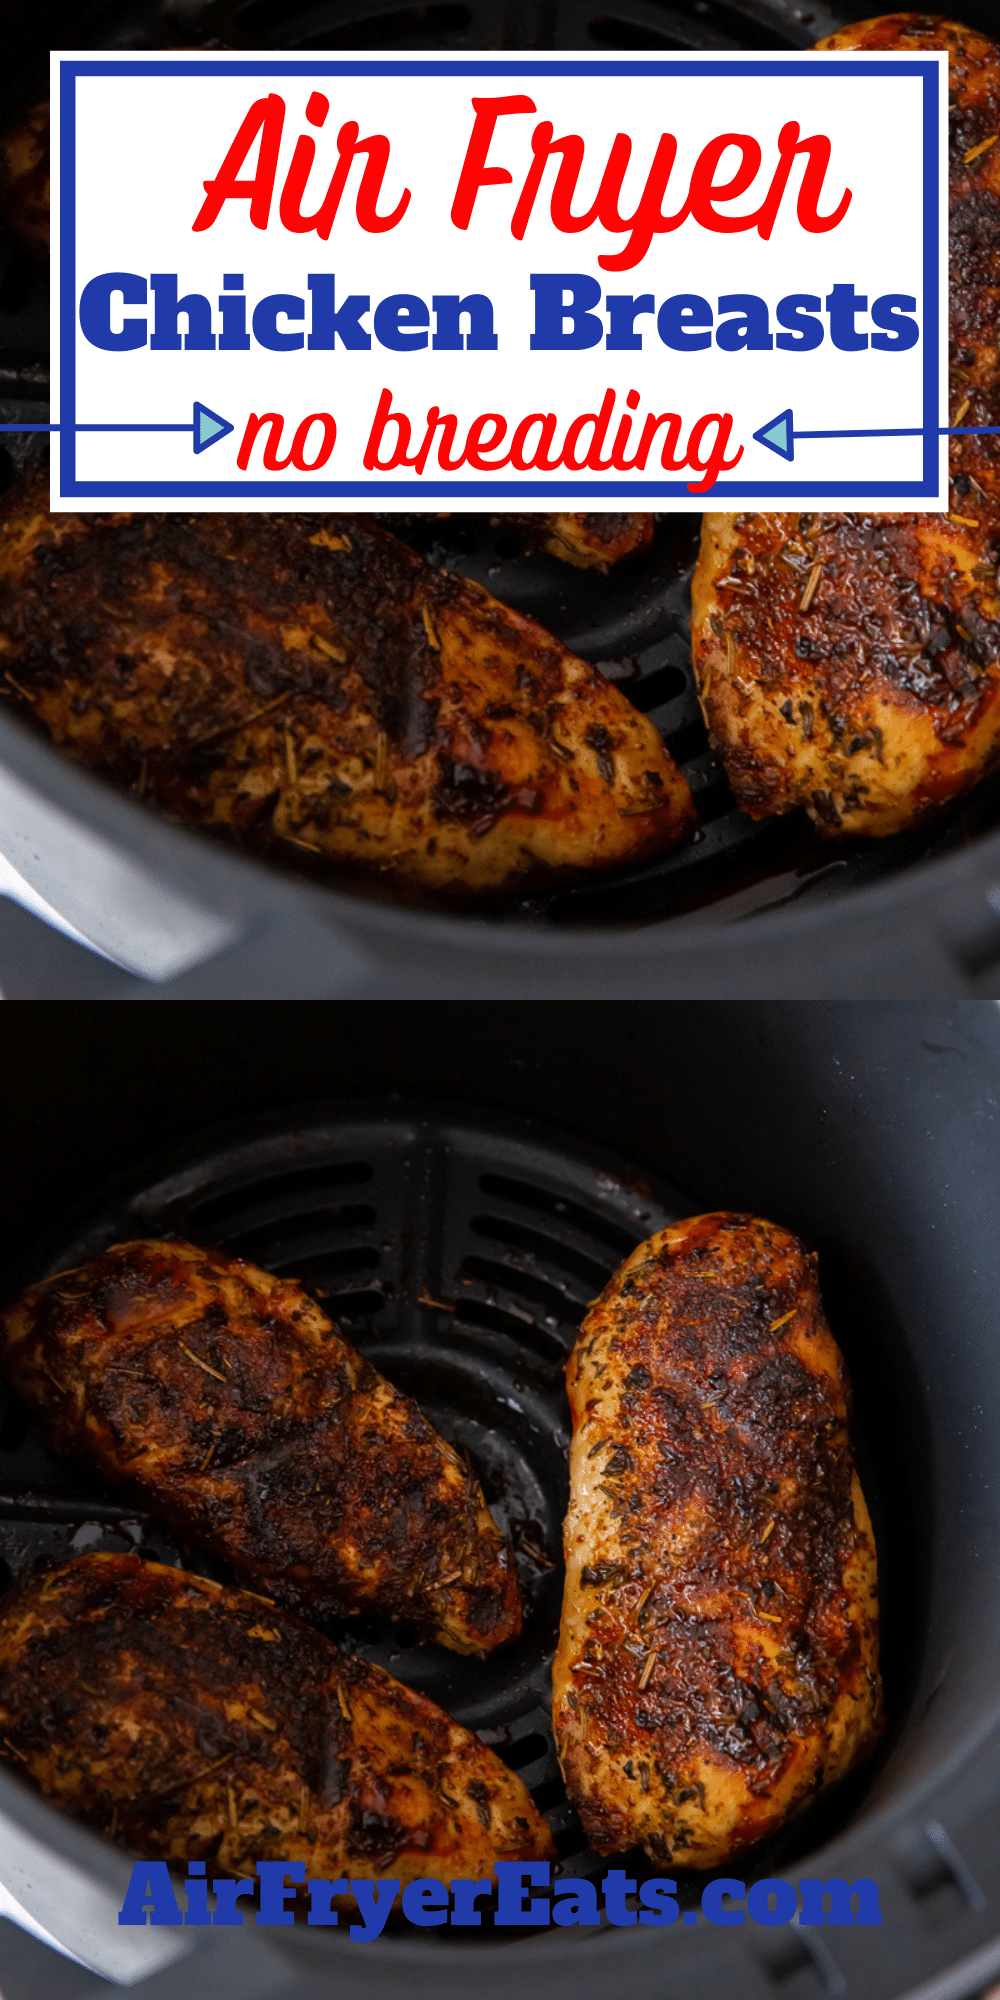 Learn how to make air fryer chicken breast that is juicy, tender, and packed full of flavor! This chicken breast in the air fryer will change the way you make dinner. #airfryerchicken via @vegetarianmamma